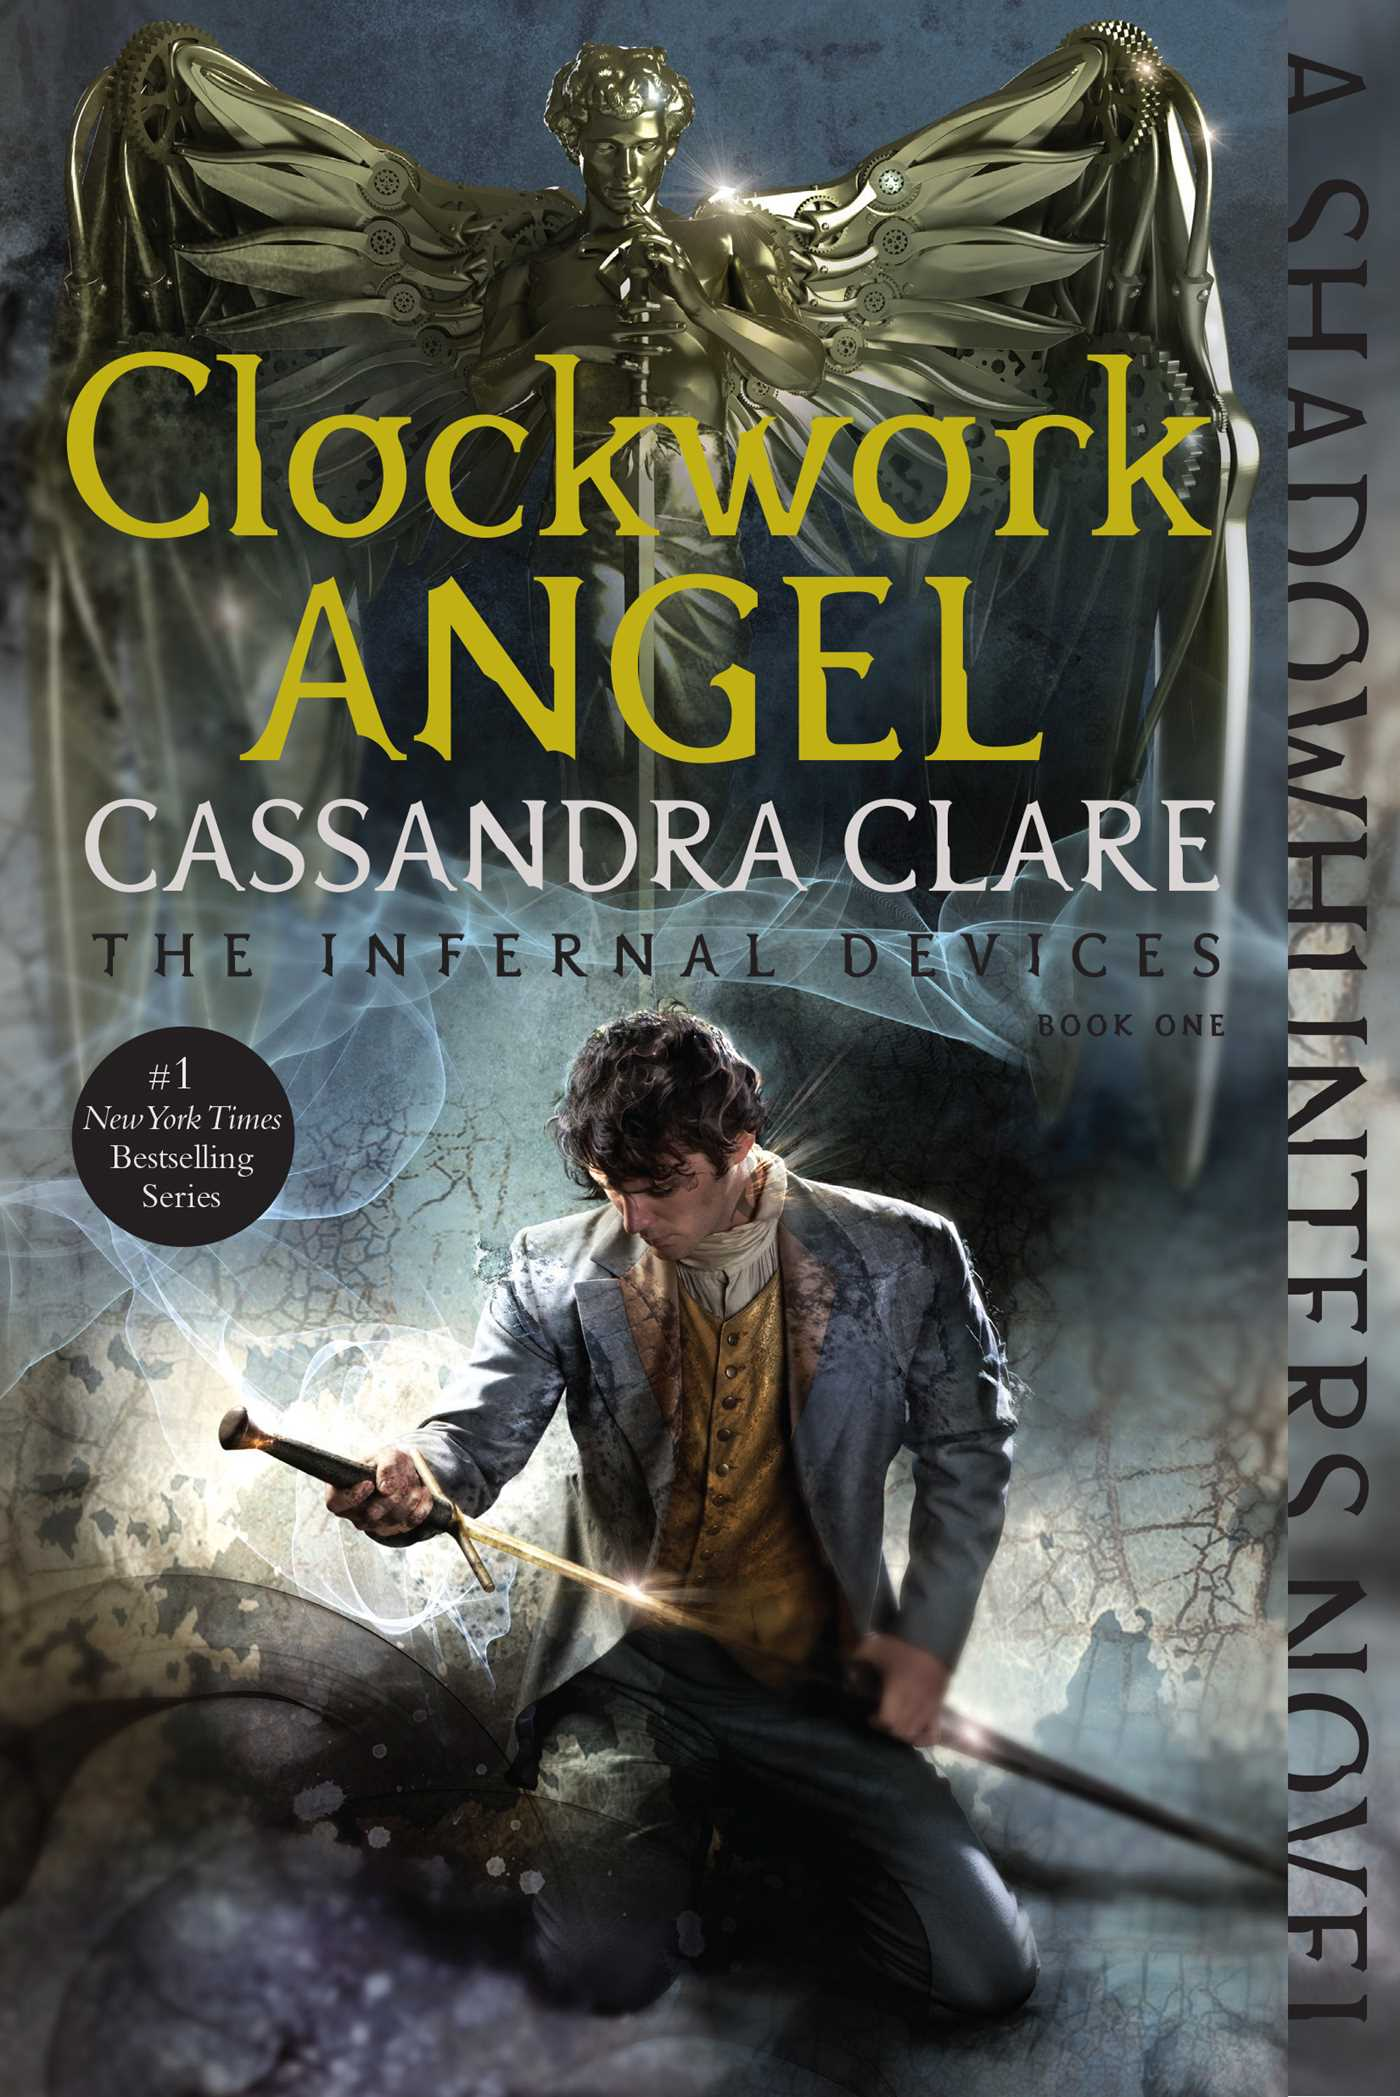 Clockwork Angel